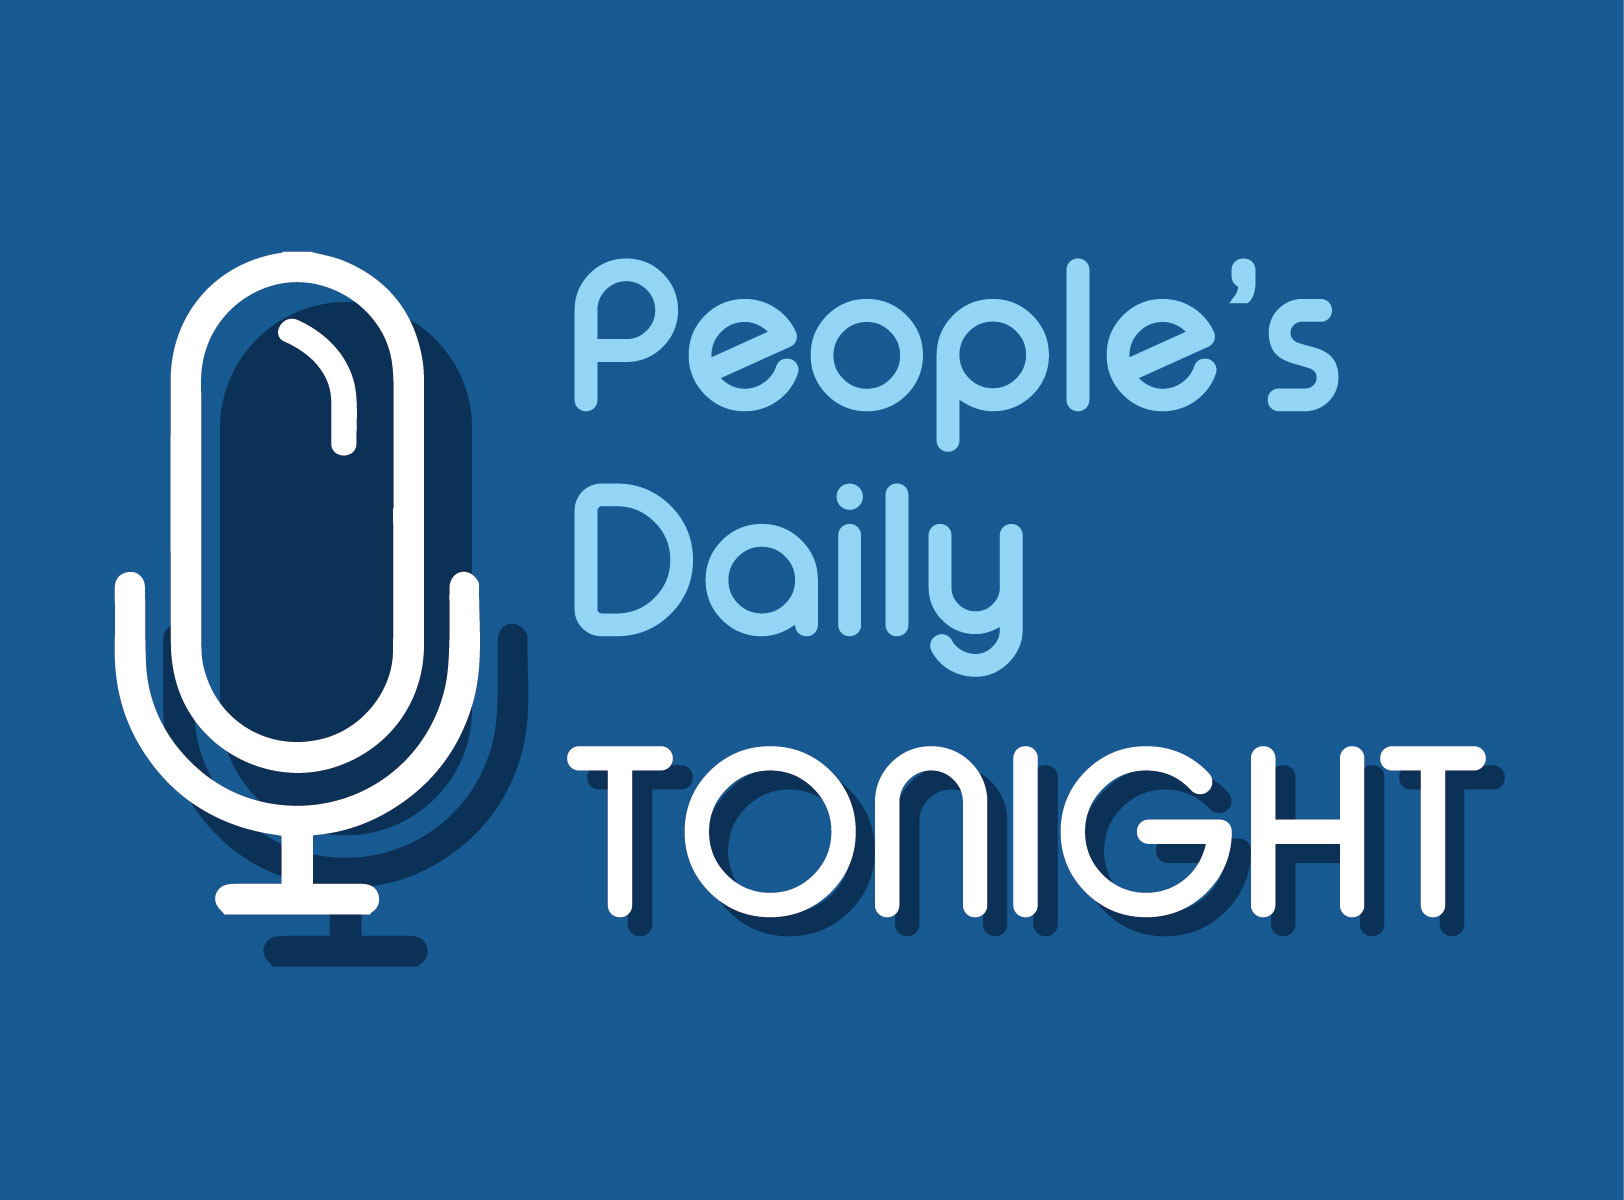 People's Daily Tonight: Podcast News (8/24/2019 Sat.)